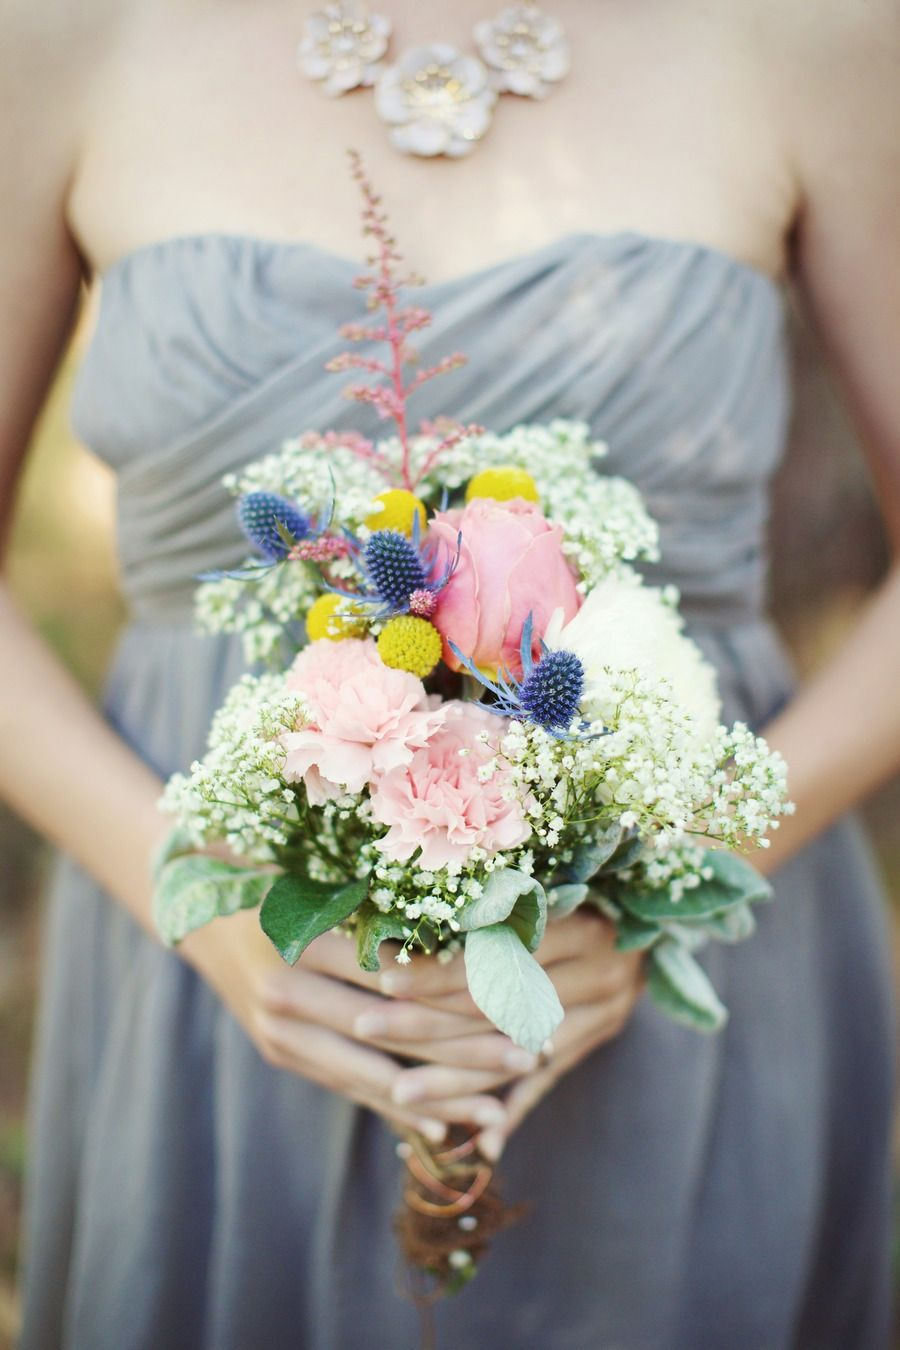 A lovely arrangement | DIY Vintage Wedding at The Mathis House from The Reason  Read more - http://www.stylemepretty.com/florida-weddings/2013/11/05/diy-vintage-wedding-at-the-mathis-house-from-the-reason/